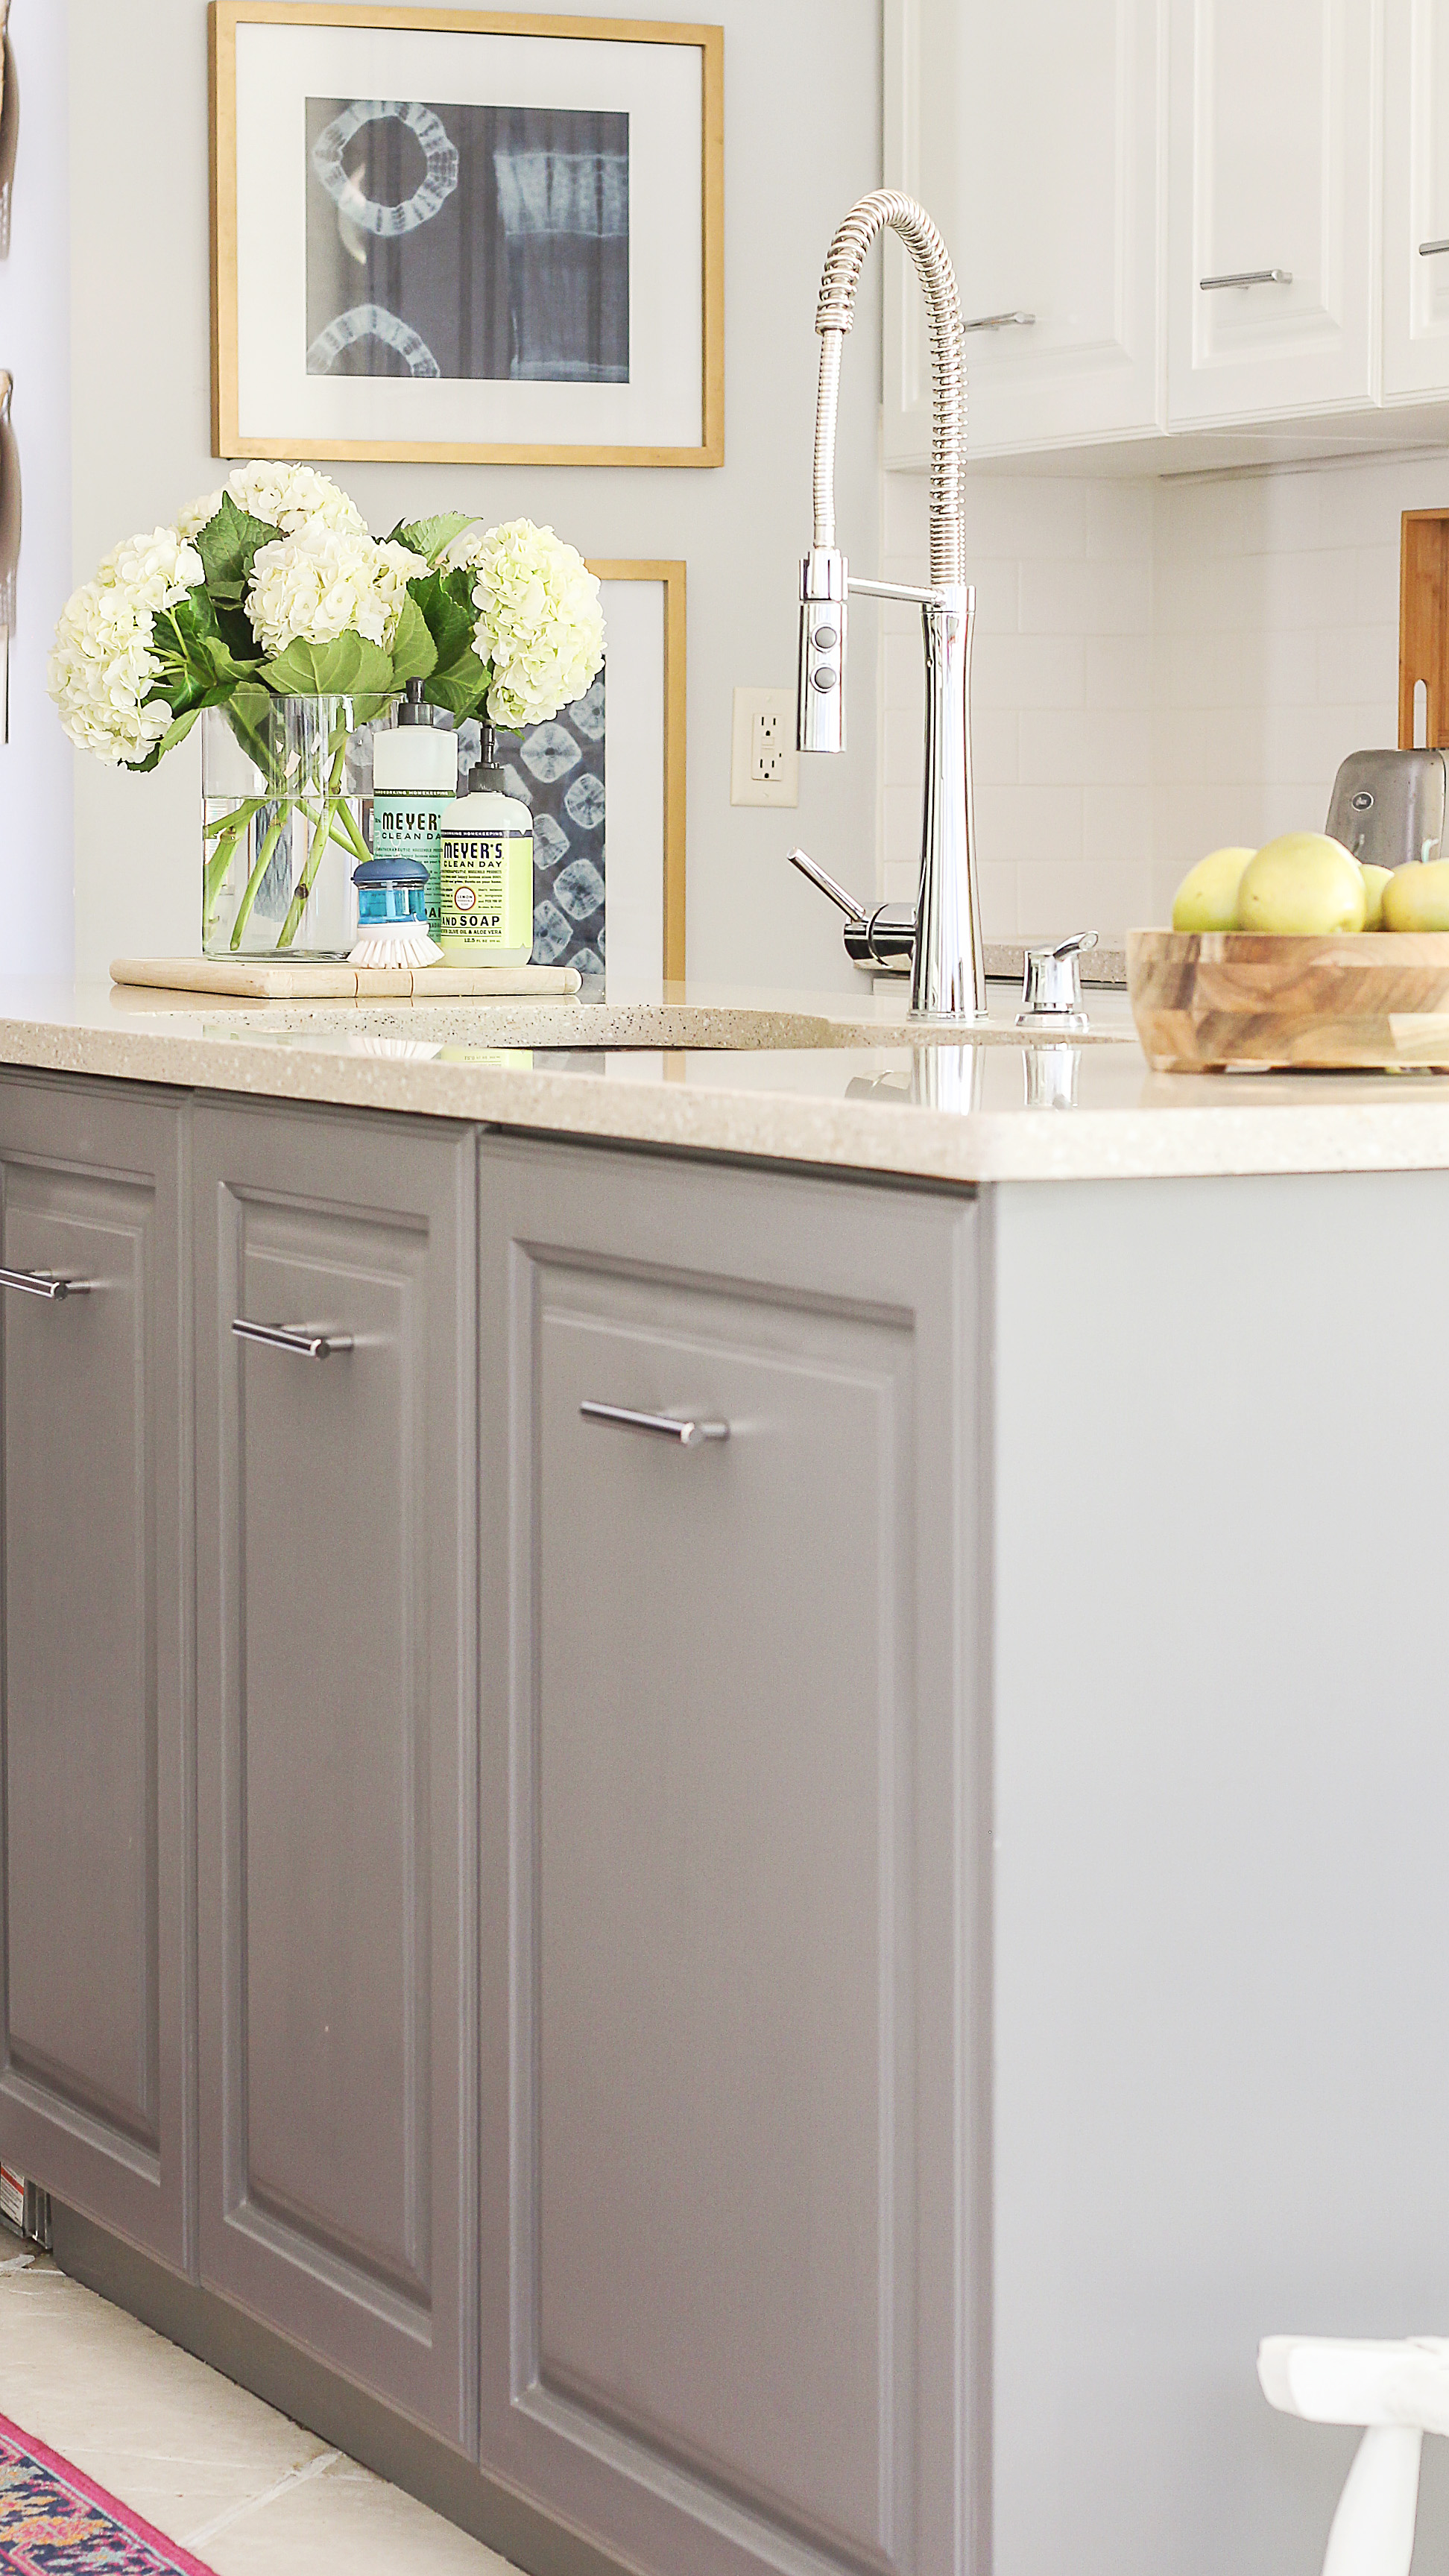 Painting Kitchen Cabinets 2017 Fastest Way To Paint Kitchen Cabinets The Ultimate Hack